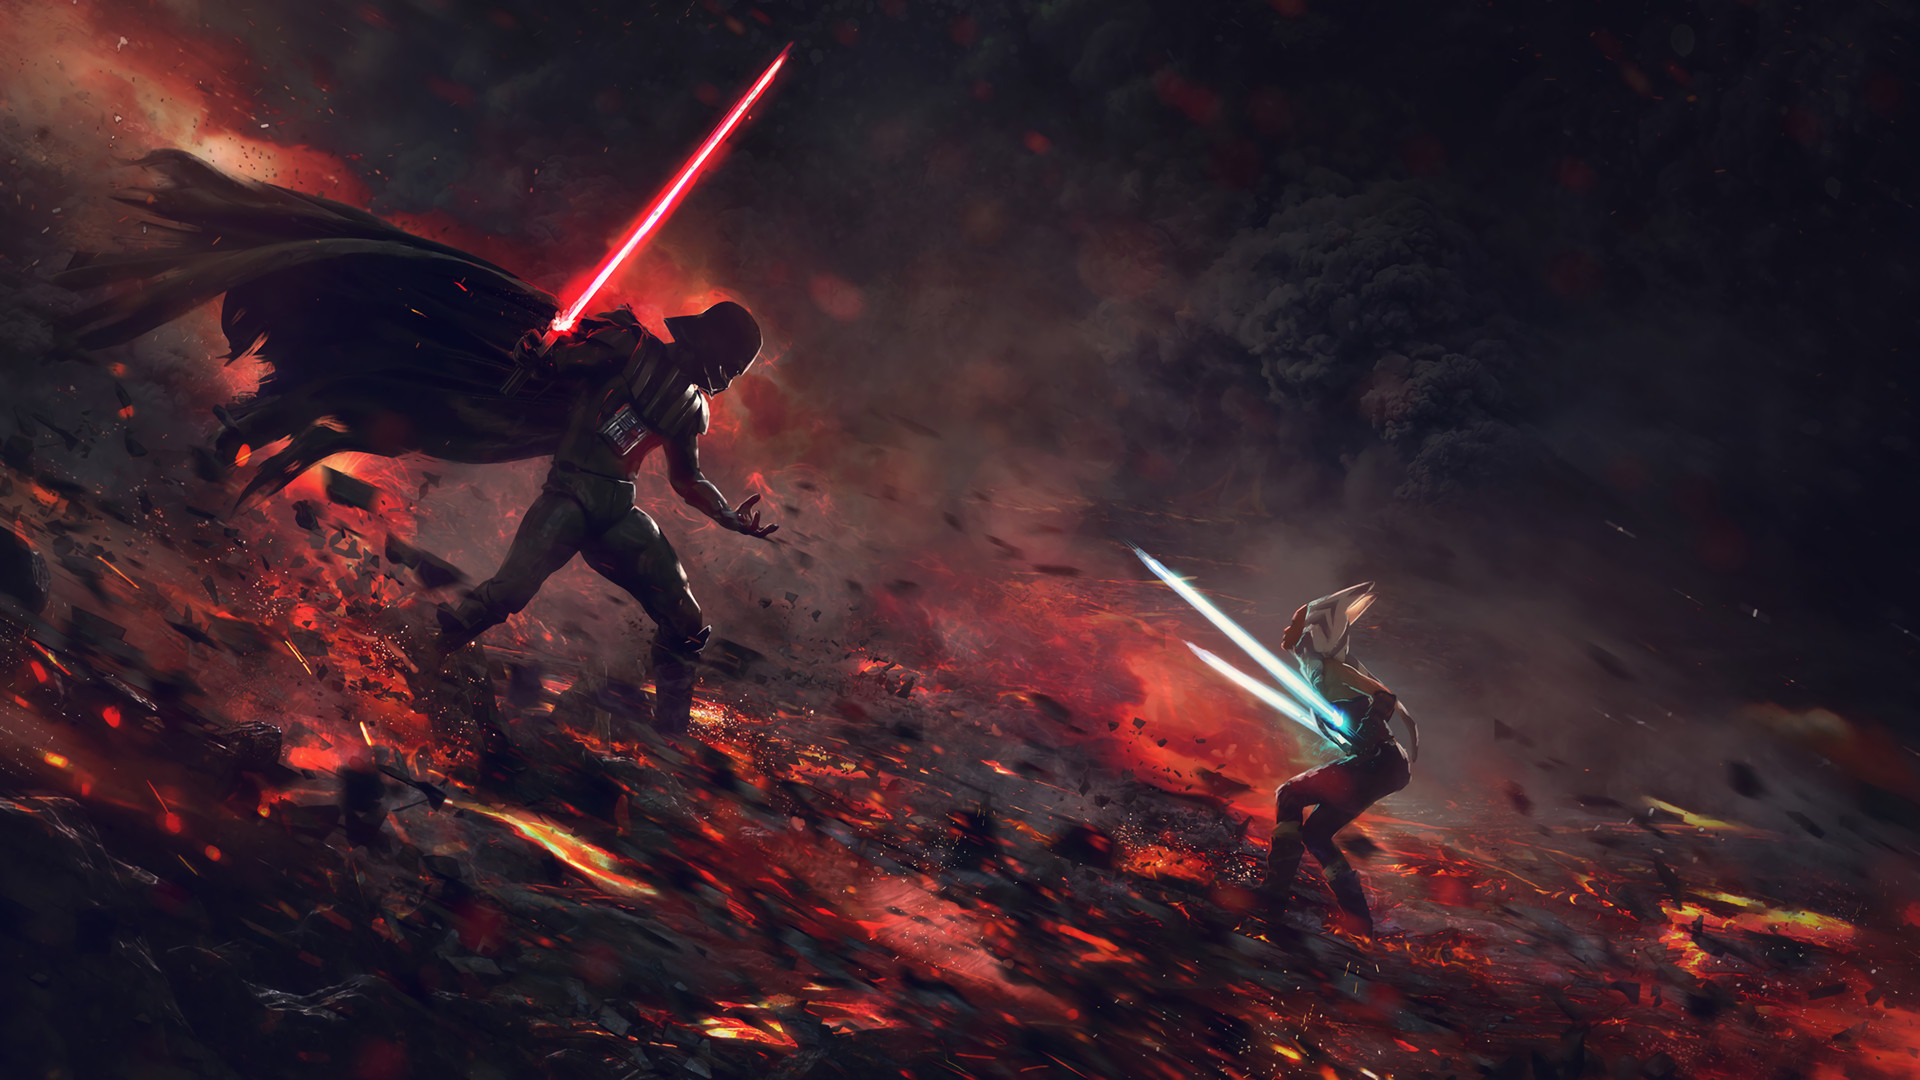 Star War Backgrounds Posted By Zoey Mercado